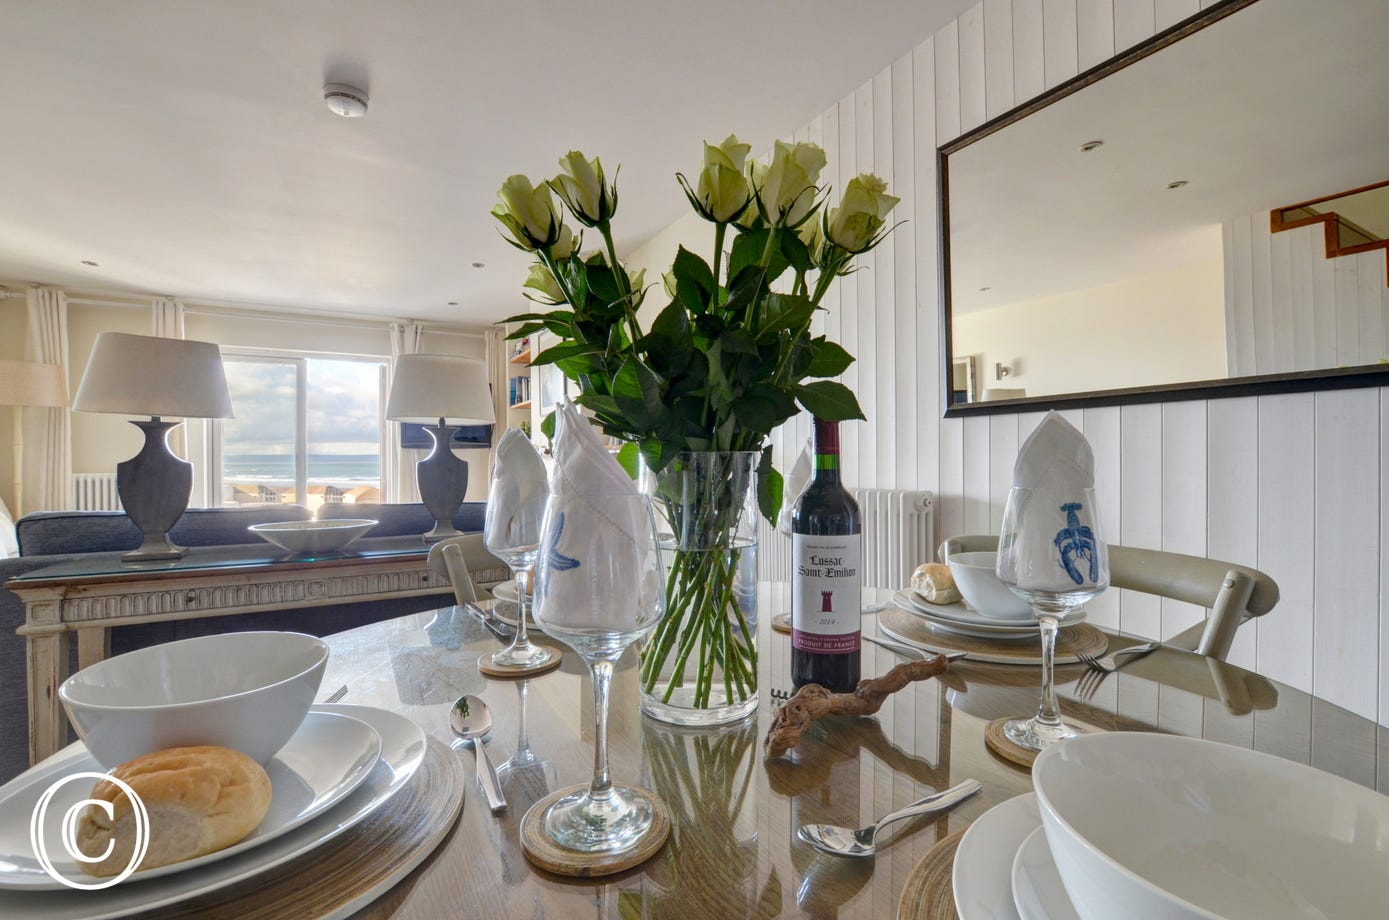 Enjoy fine dining around the stylish dining table